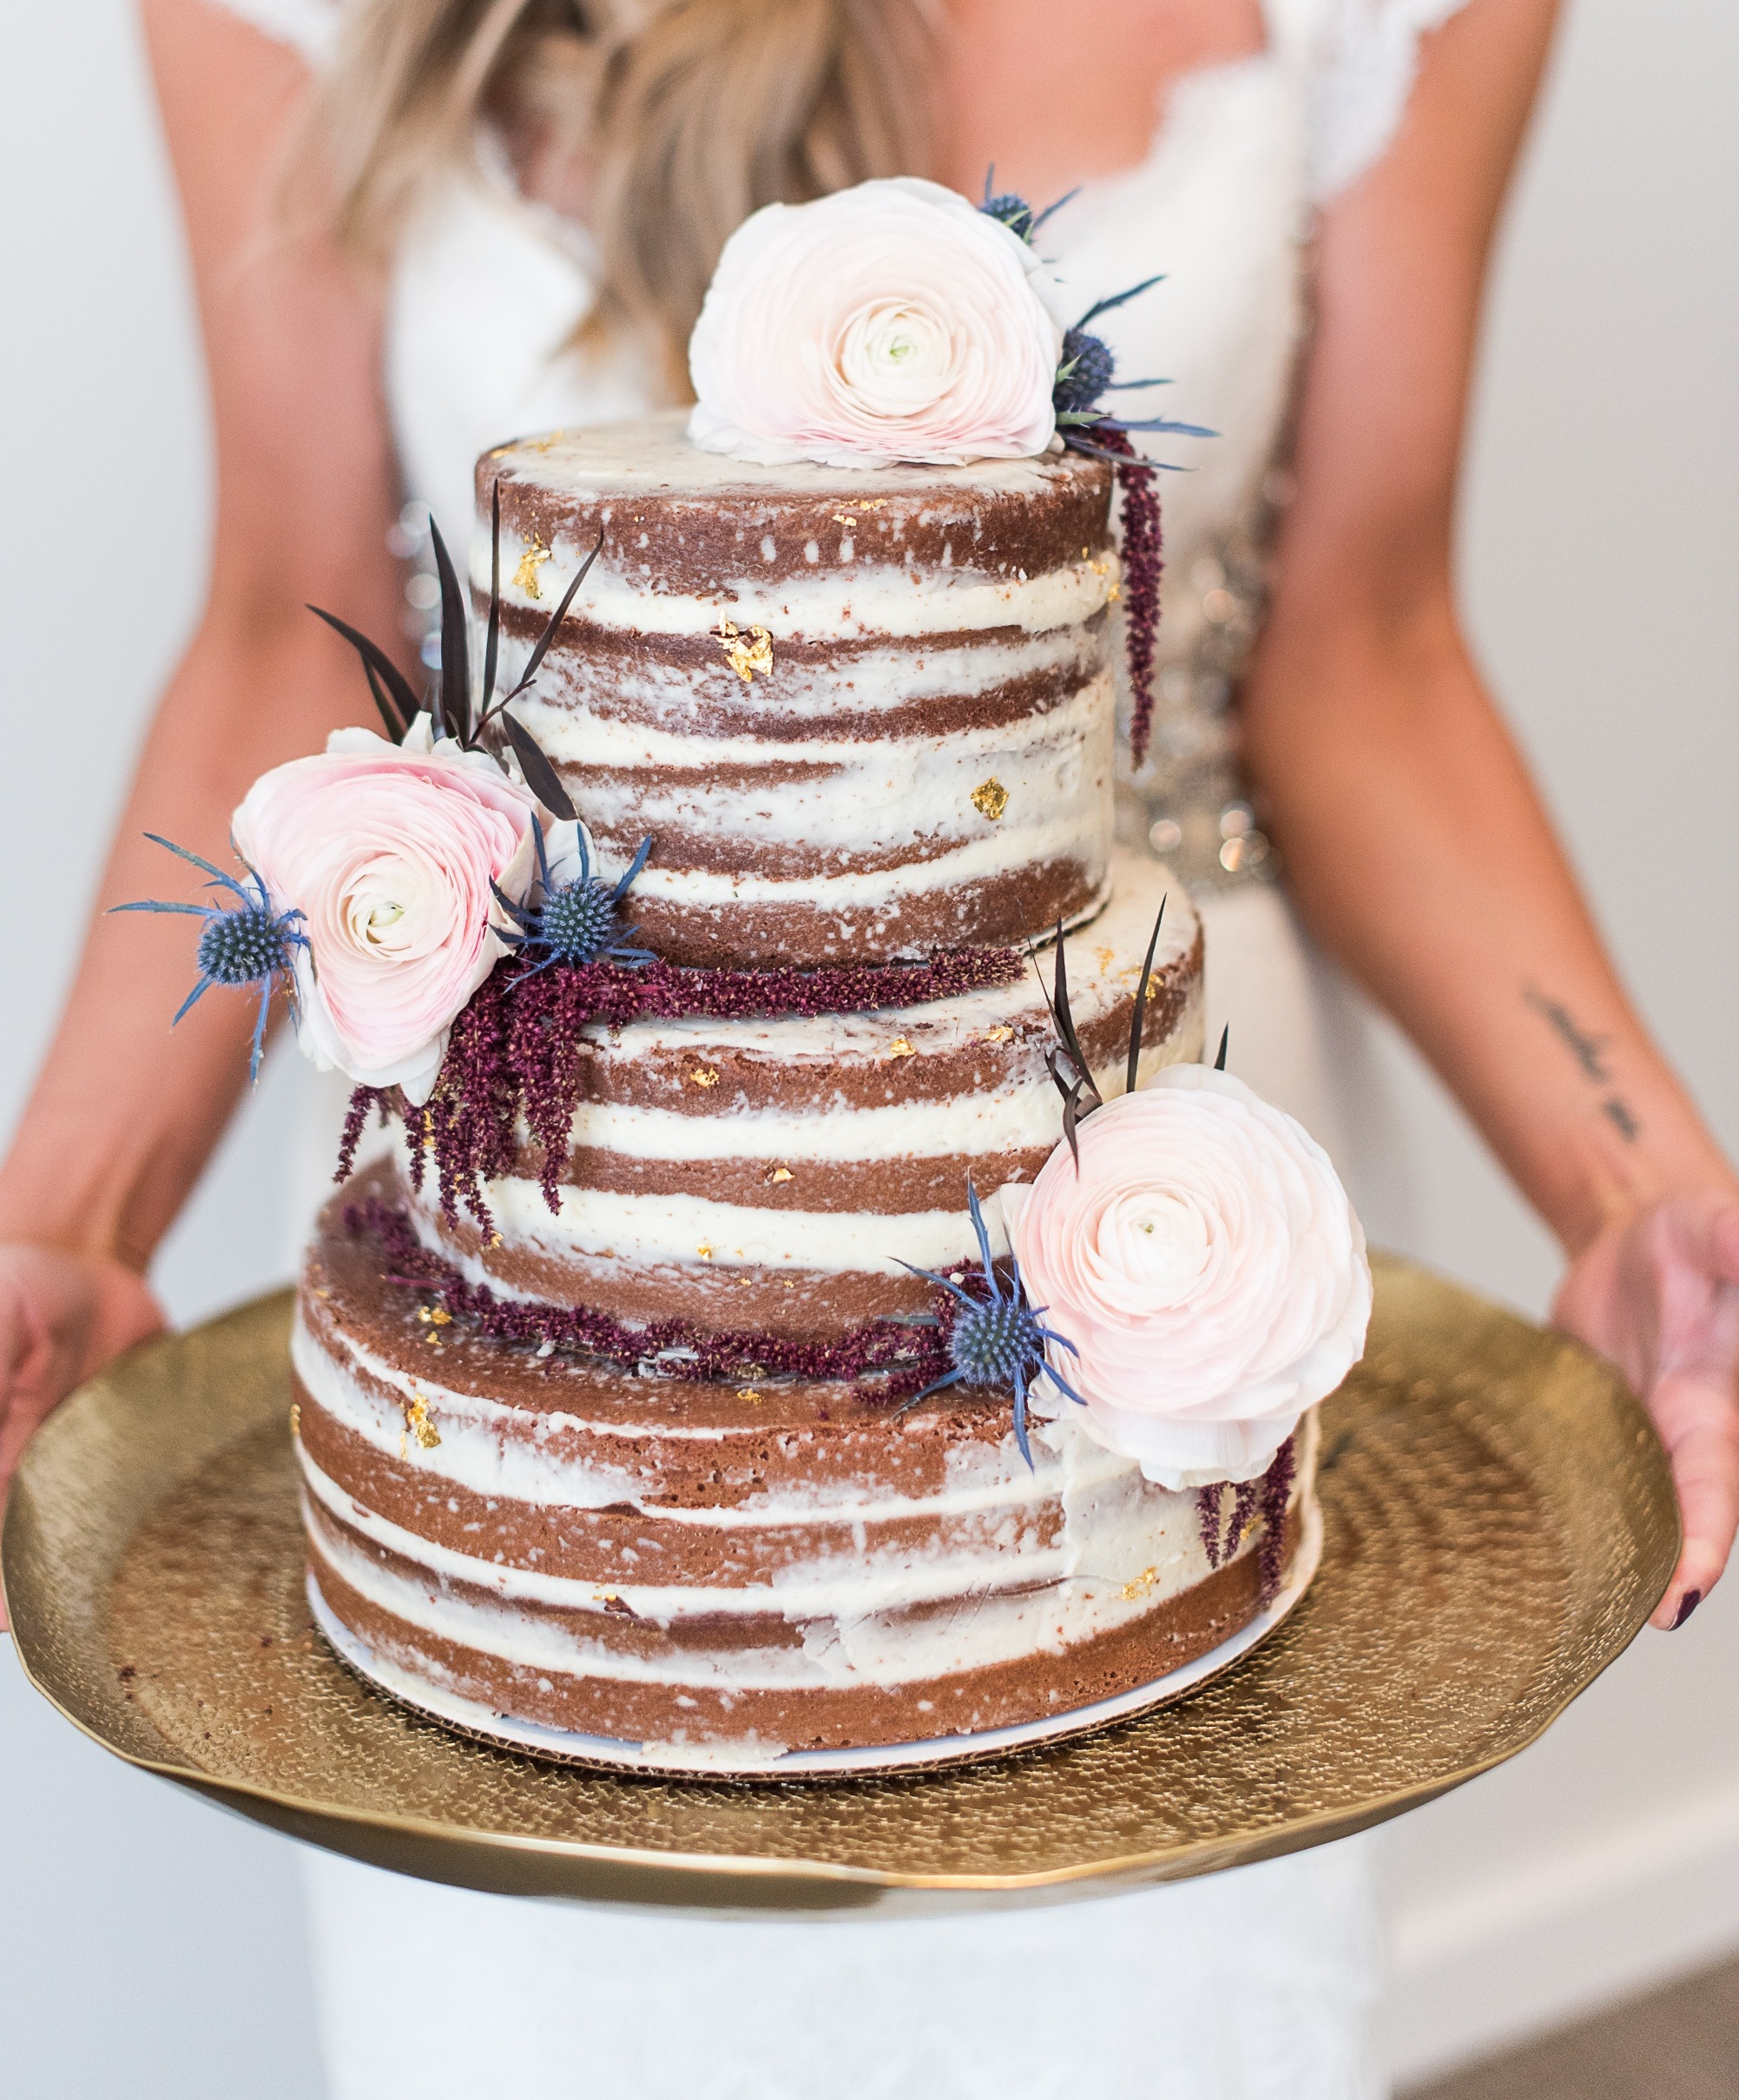 DESSERT CATERING - Stand out from the crowd with your customized display of handcrafted bite size desserts that every guest will love. Astonish your guests with an enchanting cake that embellishes the romance and love of every moment.